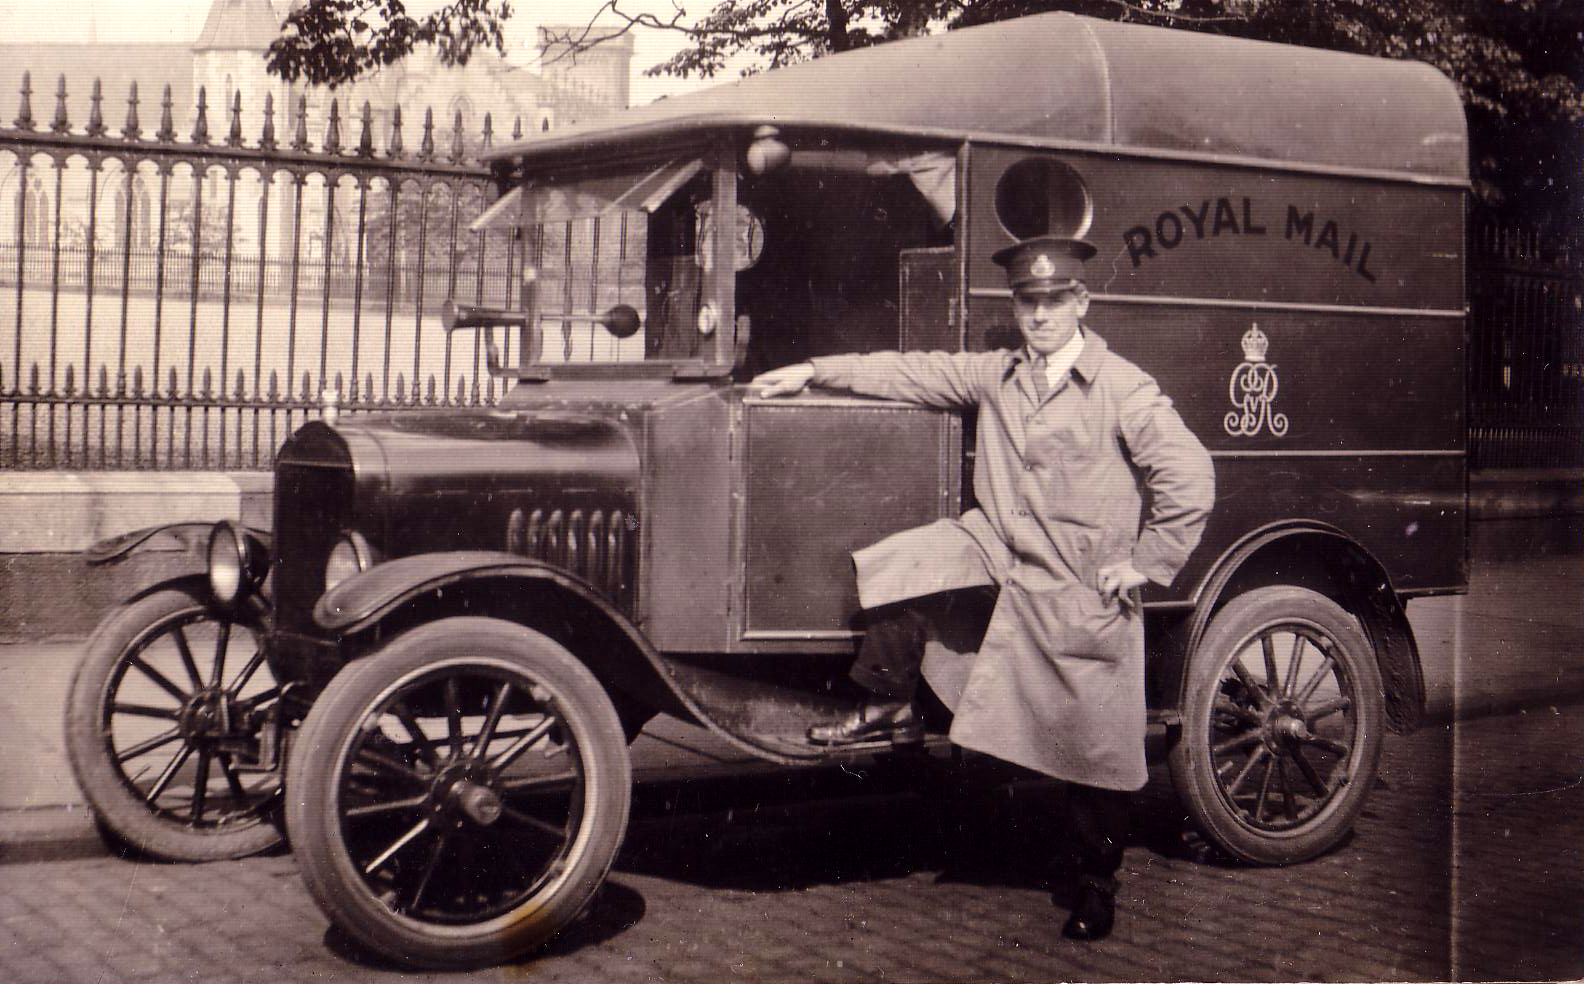 Royal Mail Van Driver Posing With Vehicle 1920s